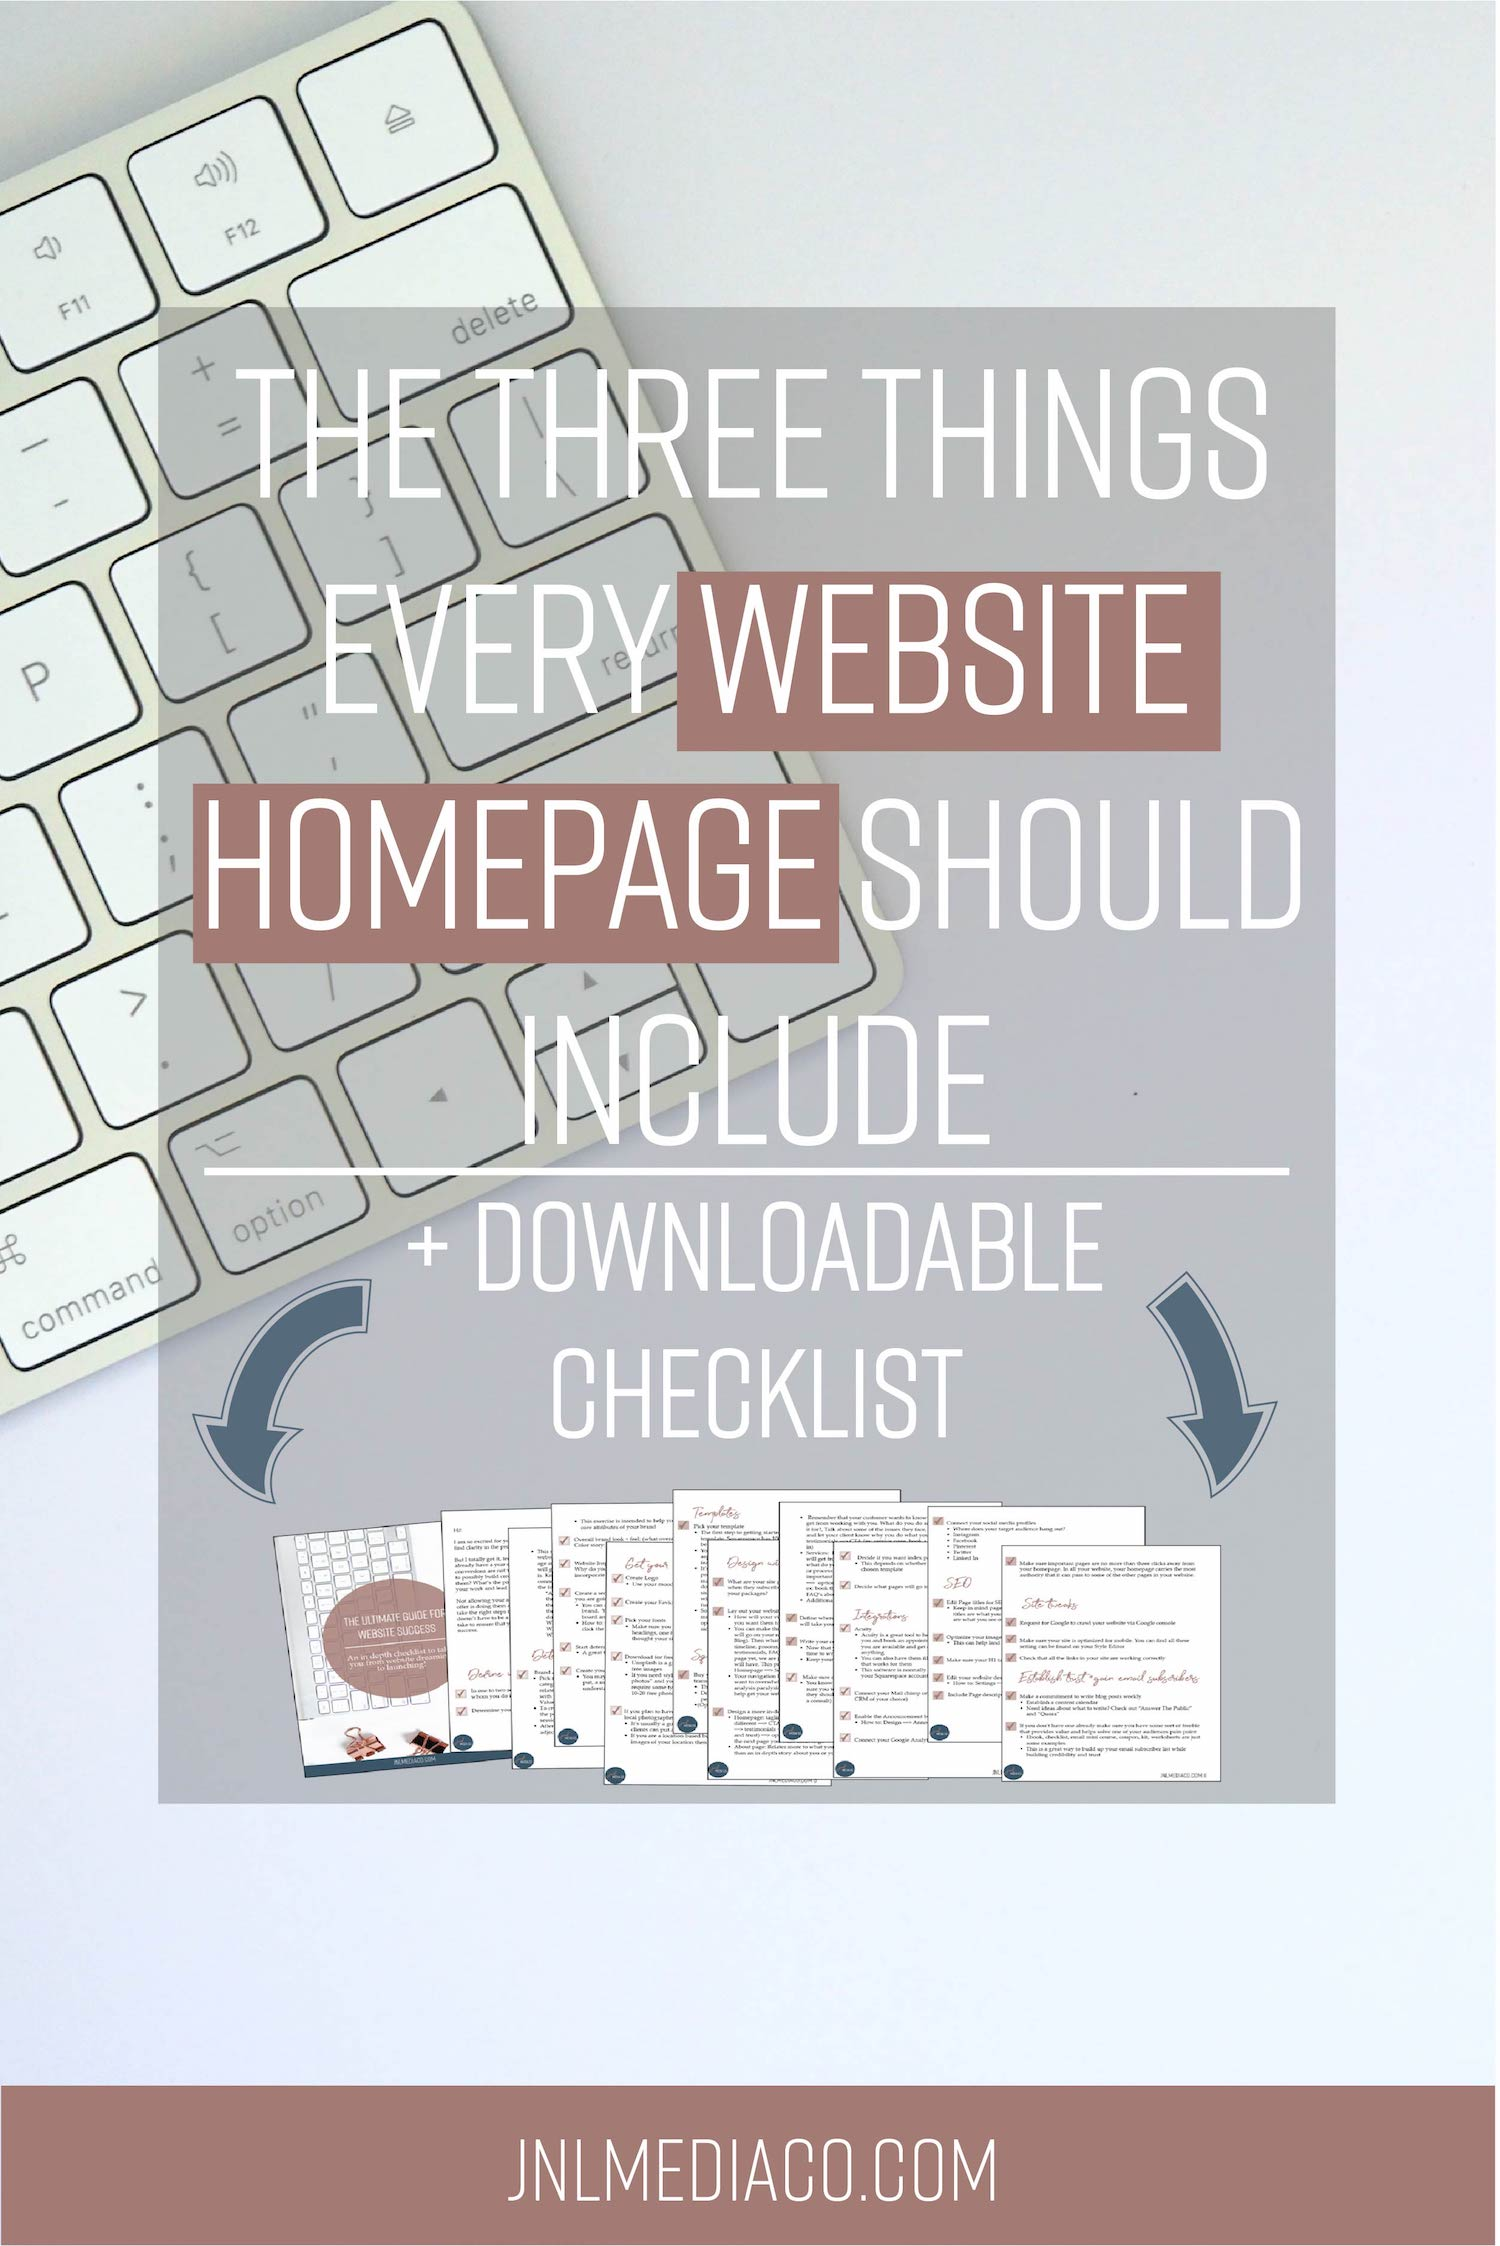 Your homepage is the first thing people see when they land on your site so it's super important you include the right type of information. So what exactly makes for an effective homepage website? Read the full post and don't forget to download my free website success checklist!